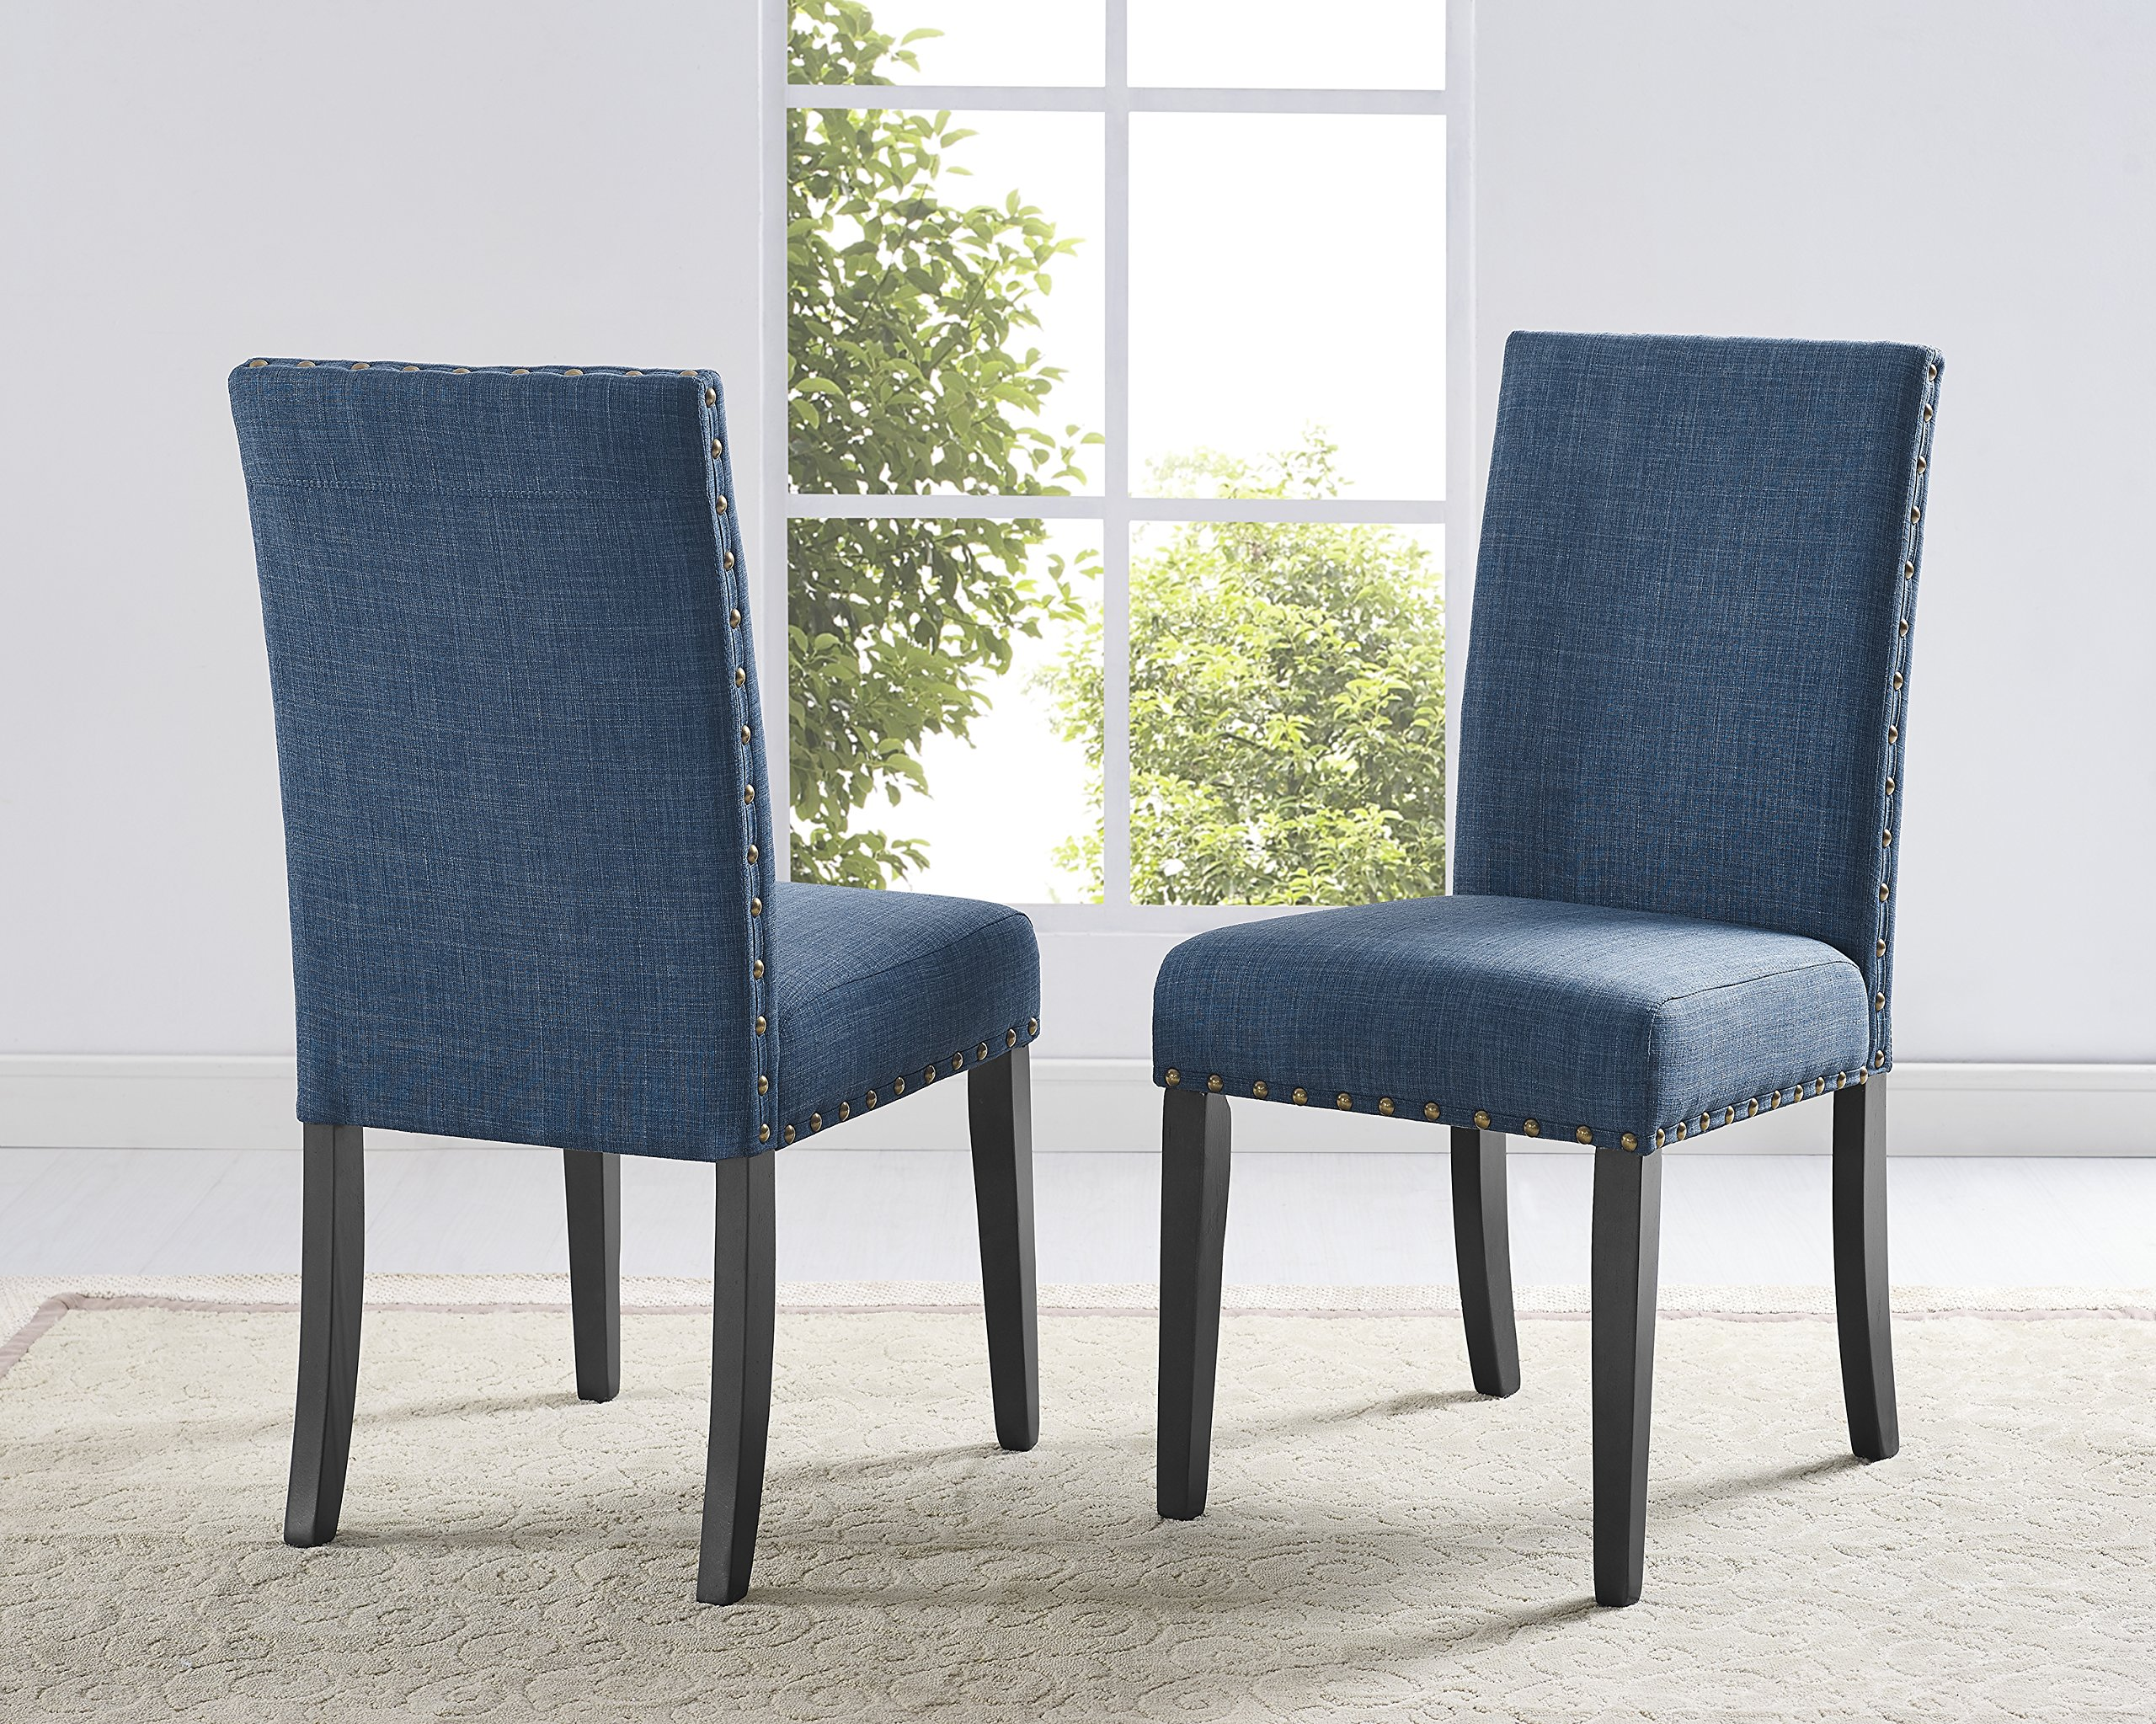 Roundhill Furniture Biony Blue Fabric Dining Chairs with Nailhead Trim, Set of 2 - Set of 2 enticing nail-head trim dining chair, blue-colored linen and cotton fabric upholstery on the Seat and chair Back Sturdy hardwood frame with solid legs, dark Espresso Finish Some assembly required, all parts and instructions included - kitchen-dining-room-furniture, kitchen-dining-room, kitchen-dining-room-chairs - A1WAkug7KvL -